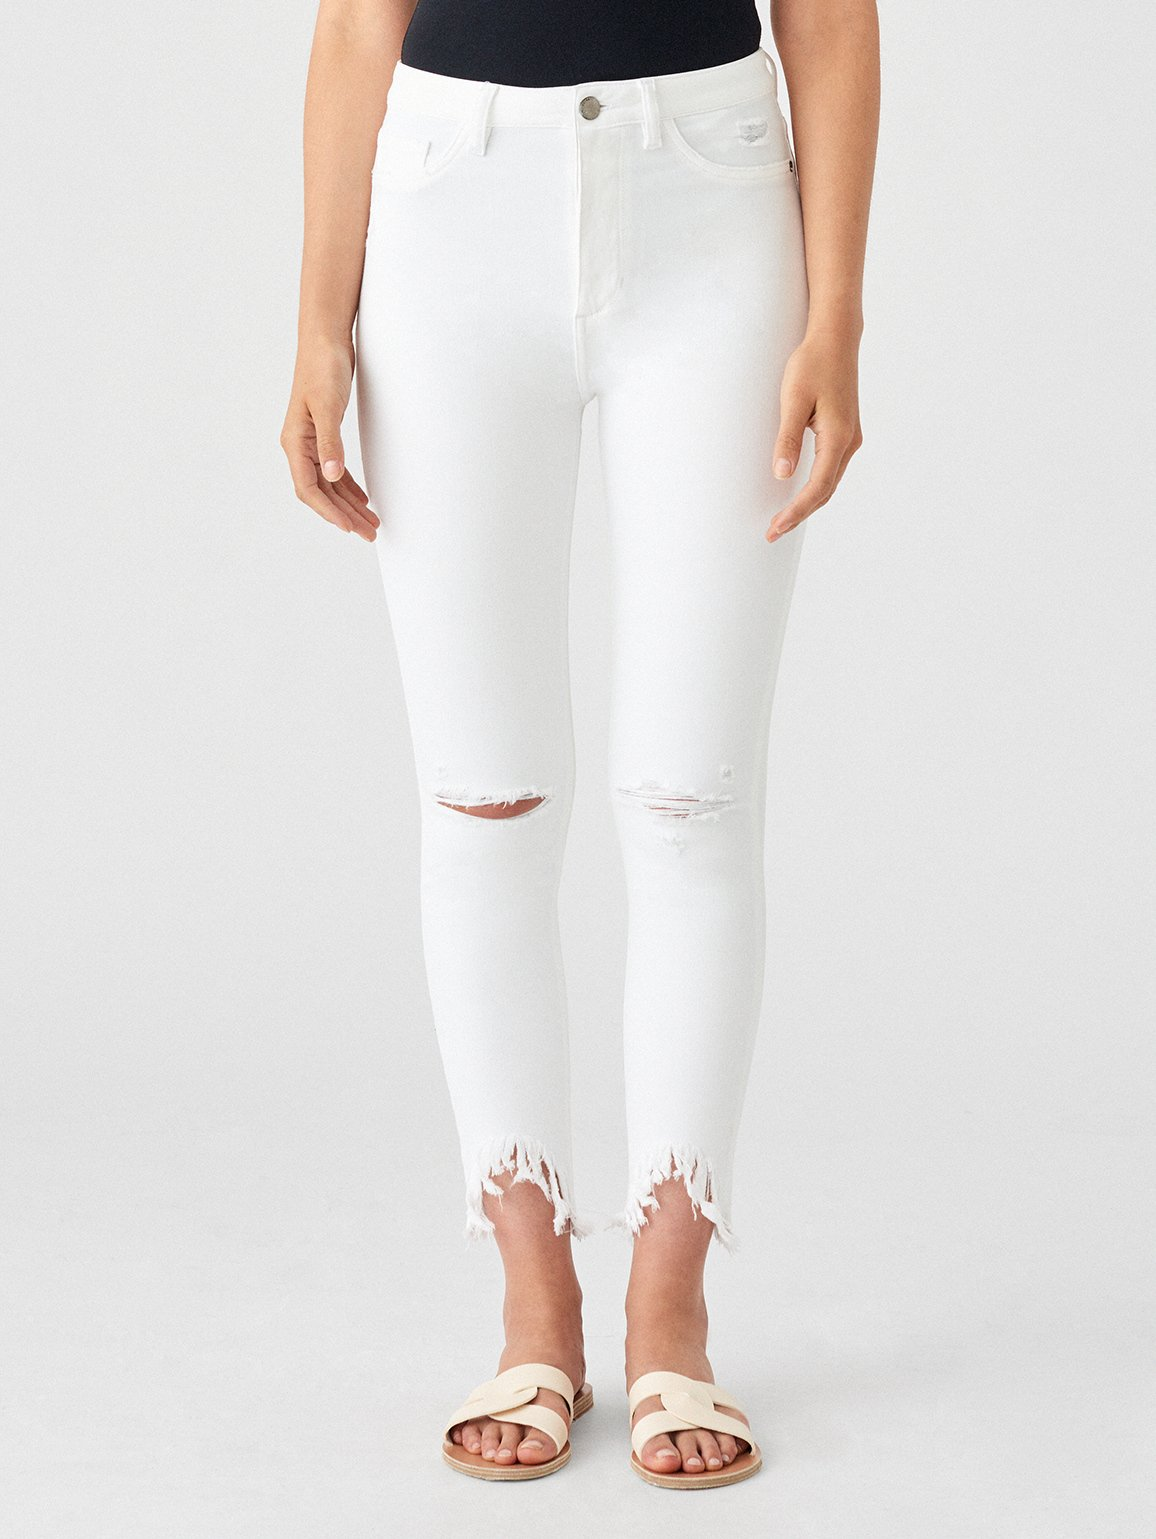 Farrow High Rise Skinny from DL1961